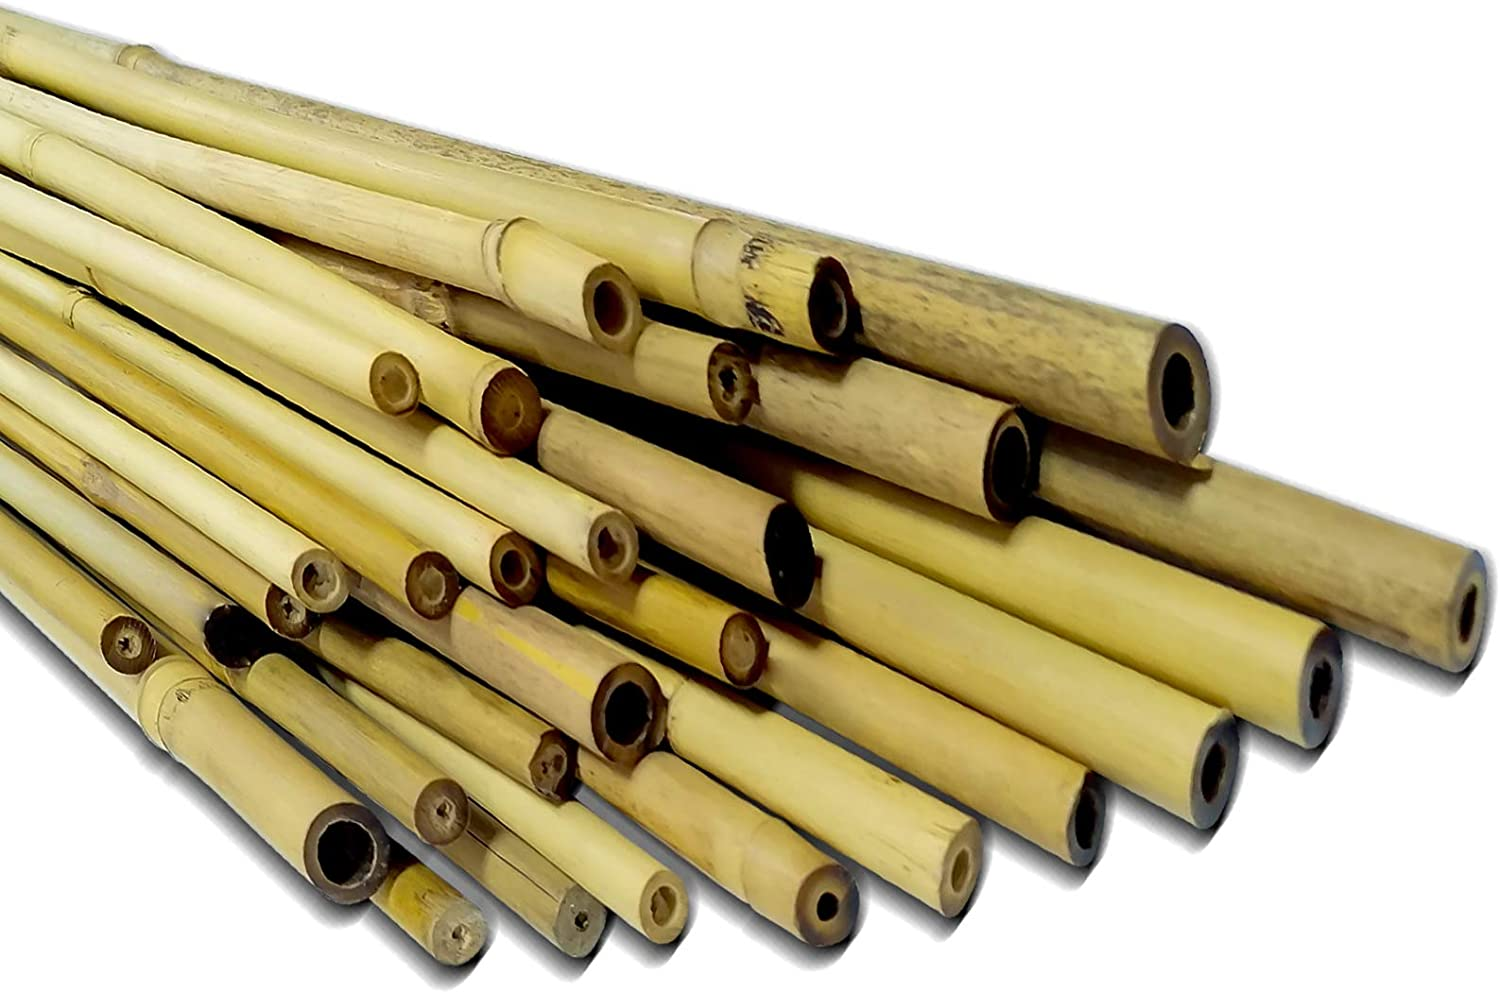 Andyrex Natural Bamboo Stakes,Garden Stakes for Plants,Plant Stakes Supports Climbing for Tomatoes,Trees,Beans (3 Feet 25 Pack)